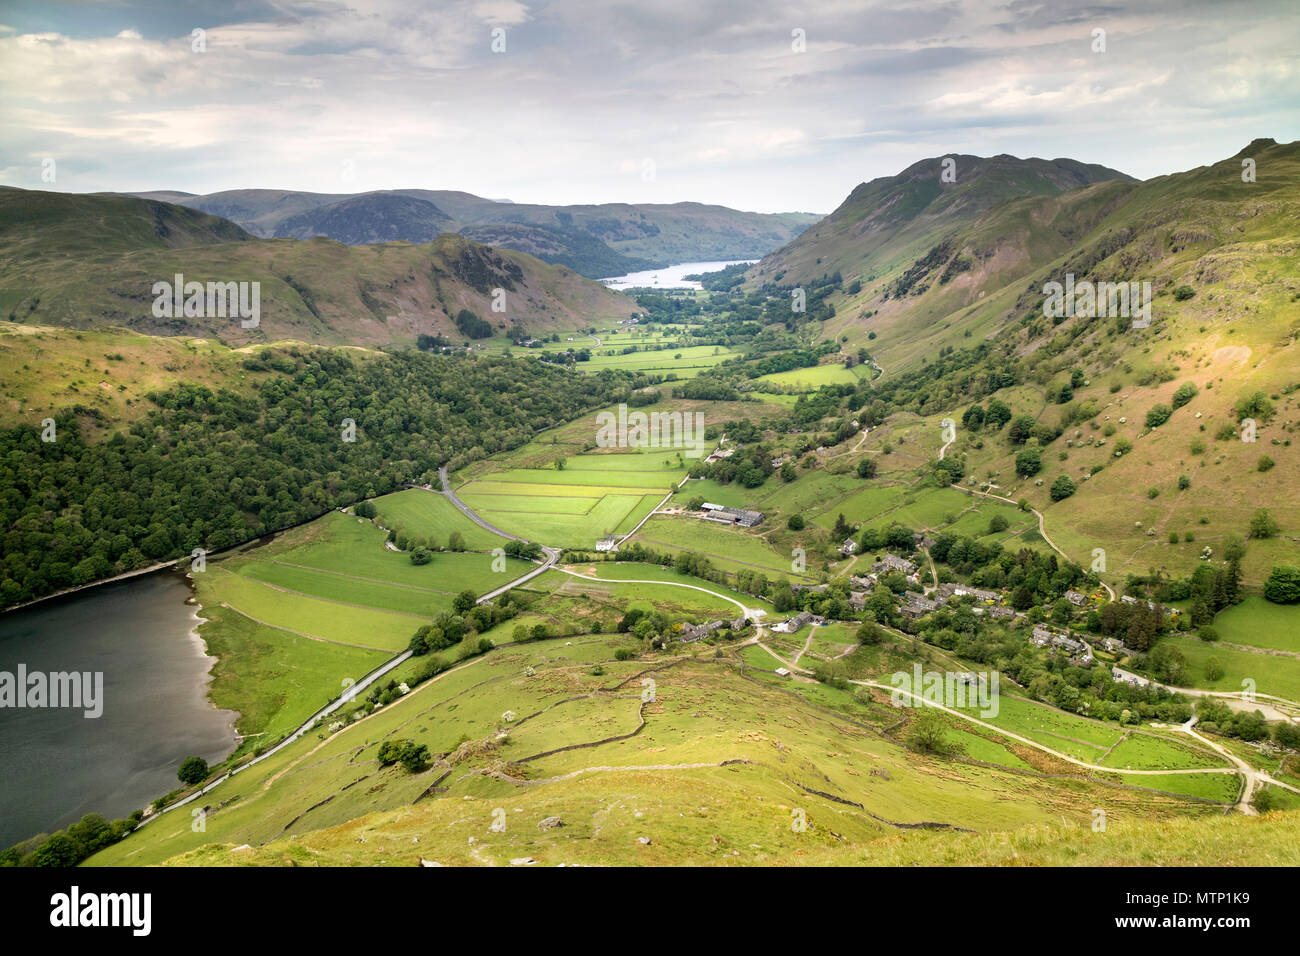 Patterdale and Ullswater from Hartsop Dodd, Lake District Cumbria, UK. - Stock Image